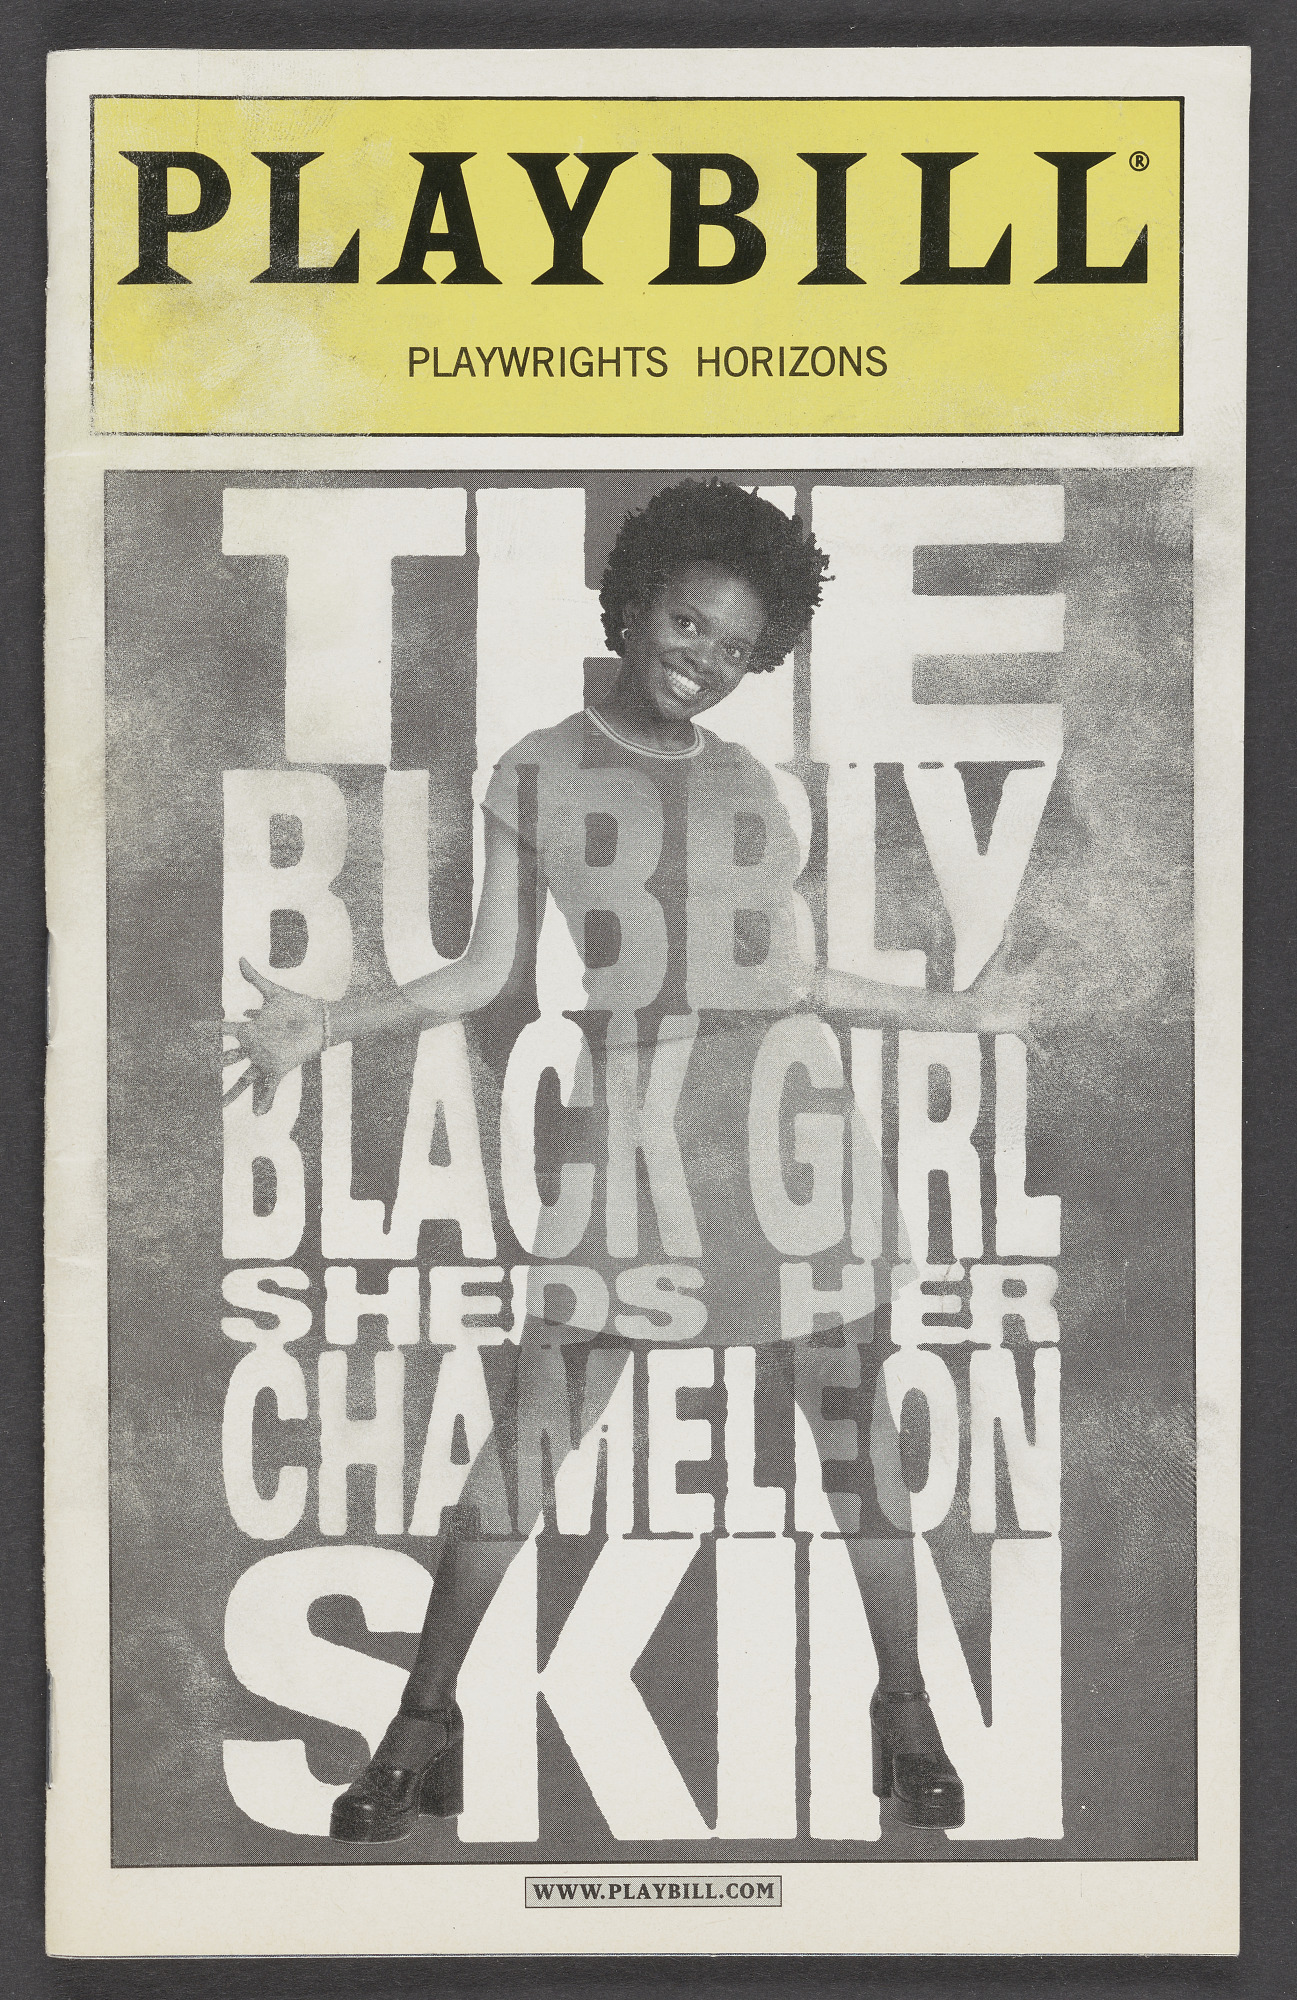 Playbill for The Bubbly Black Girl Sheds Her Chameleon Skin